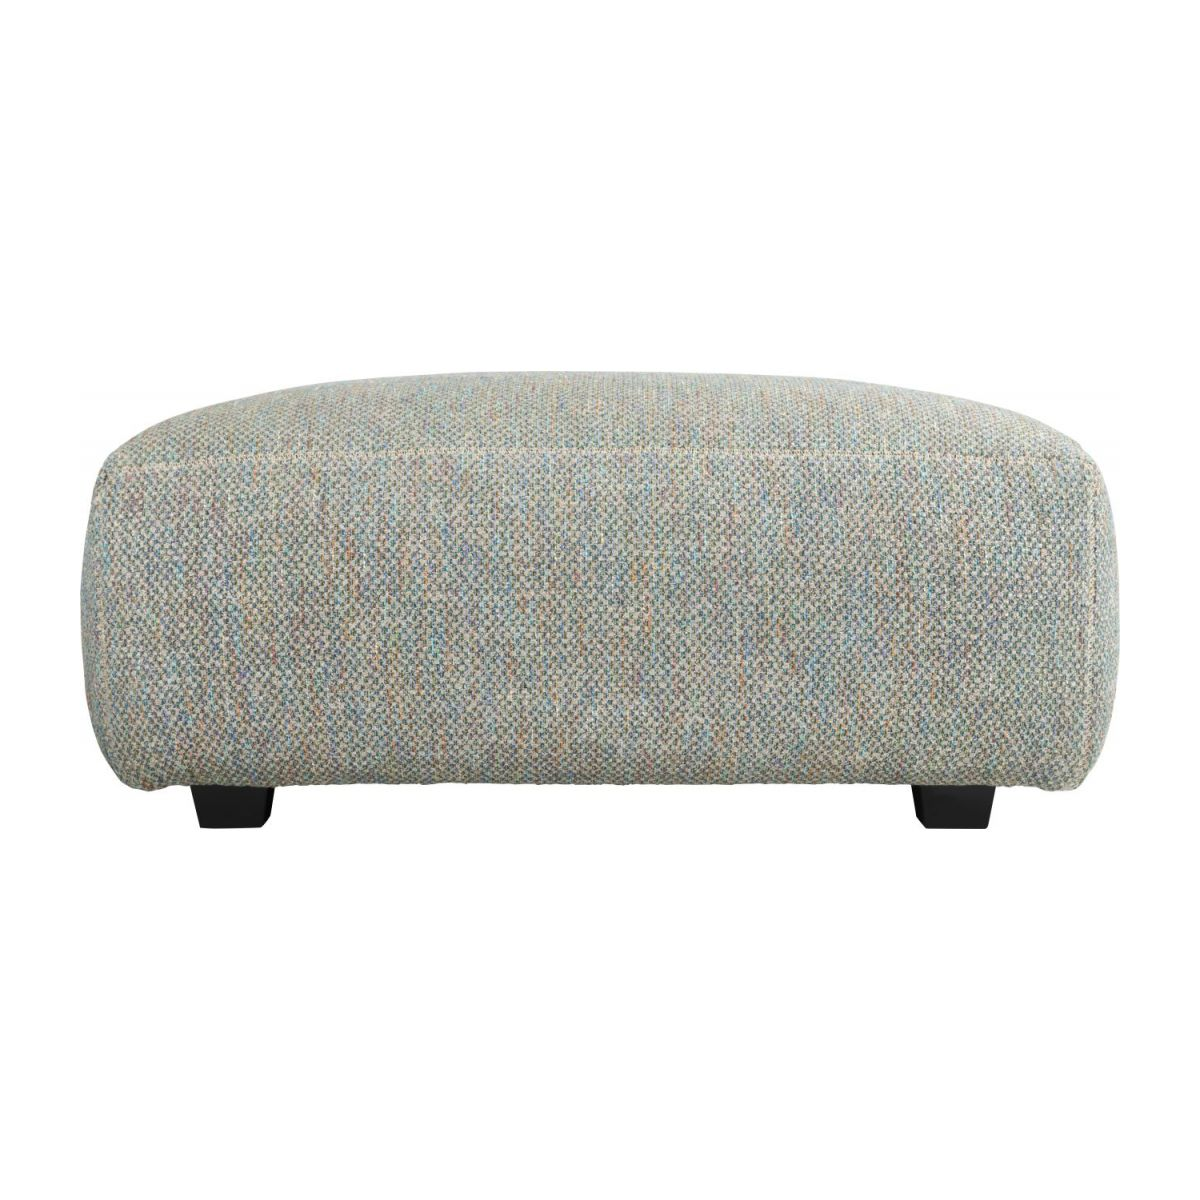 Footstool in Bellagio fabric, organic green n°3